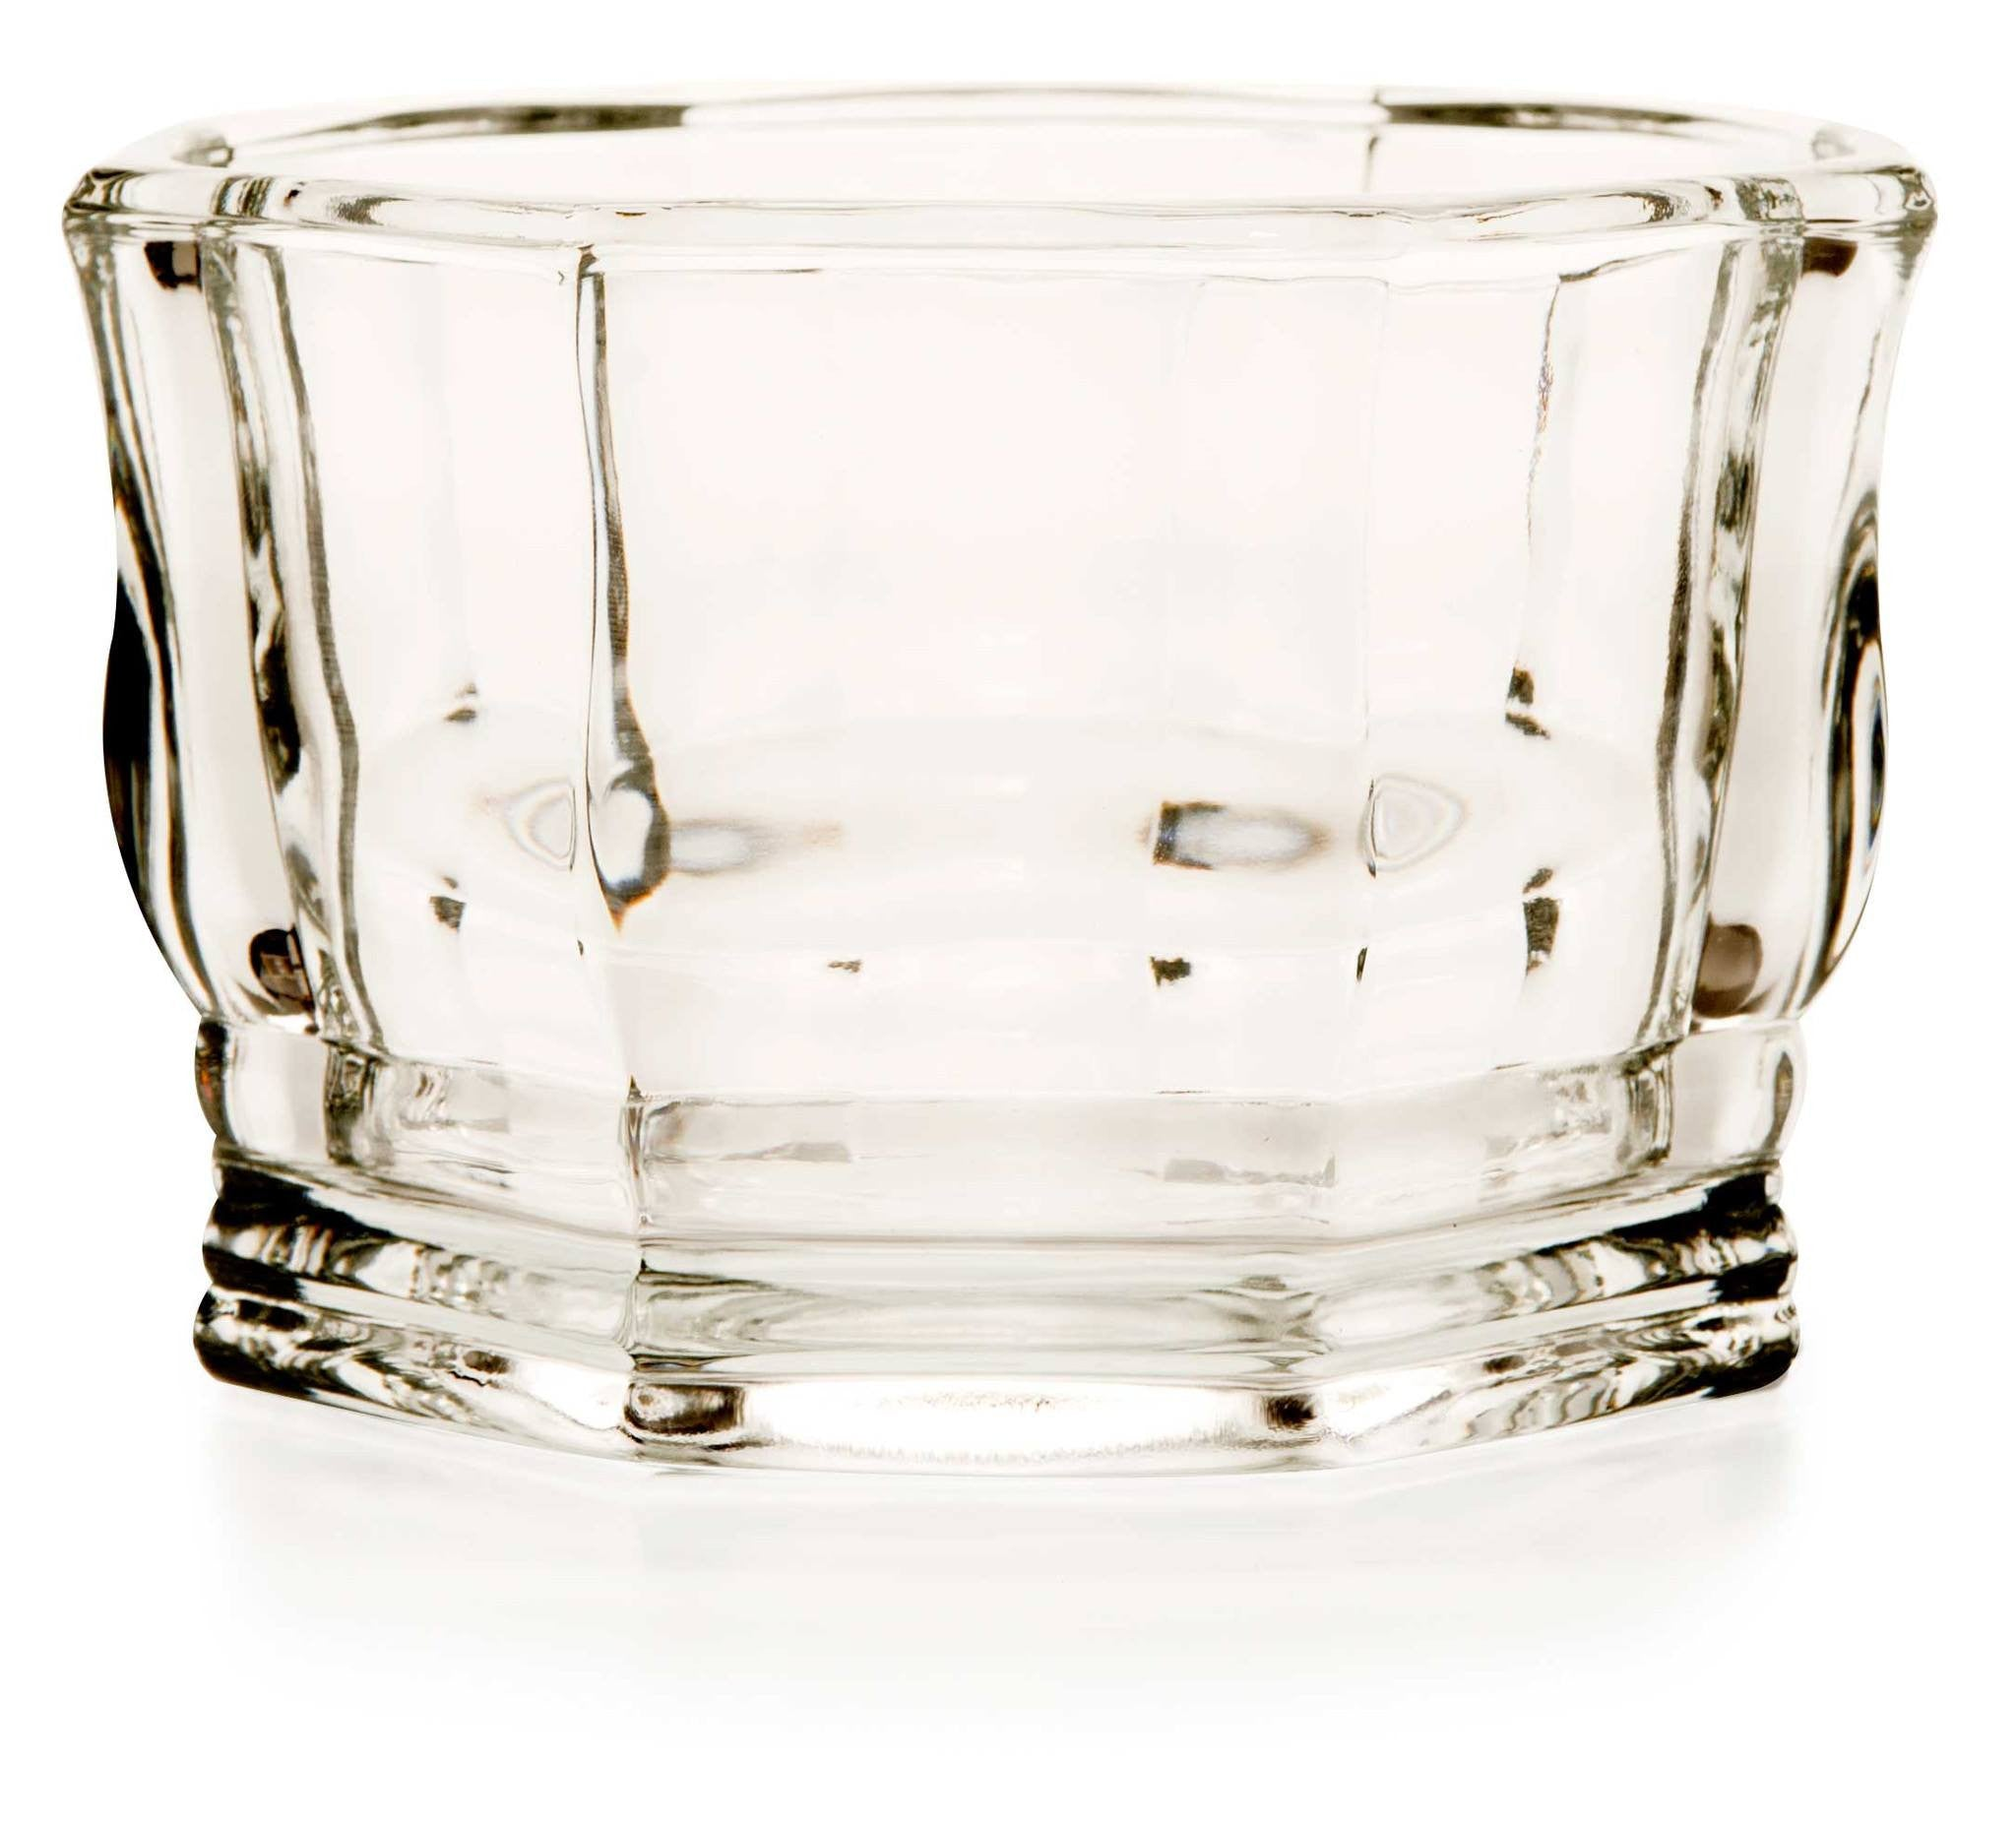 Glass bowl - 8 sided - octagon, faceted - WeddingCandles.com